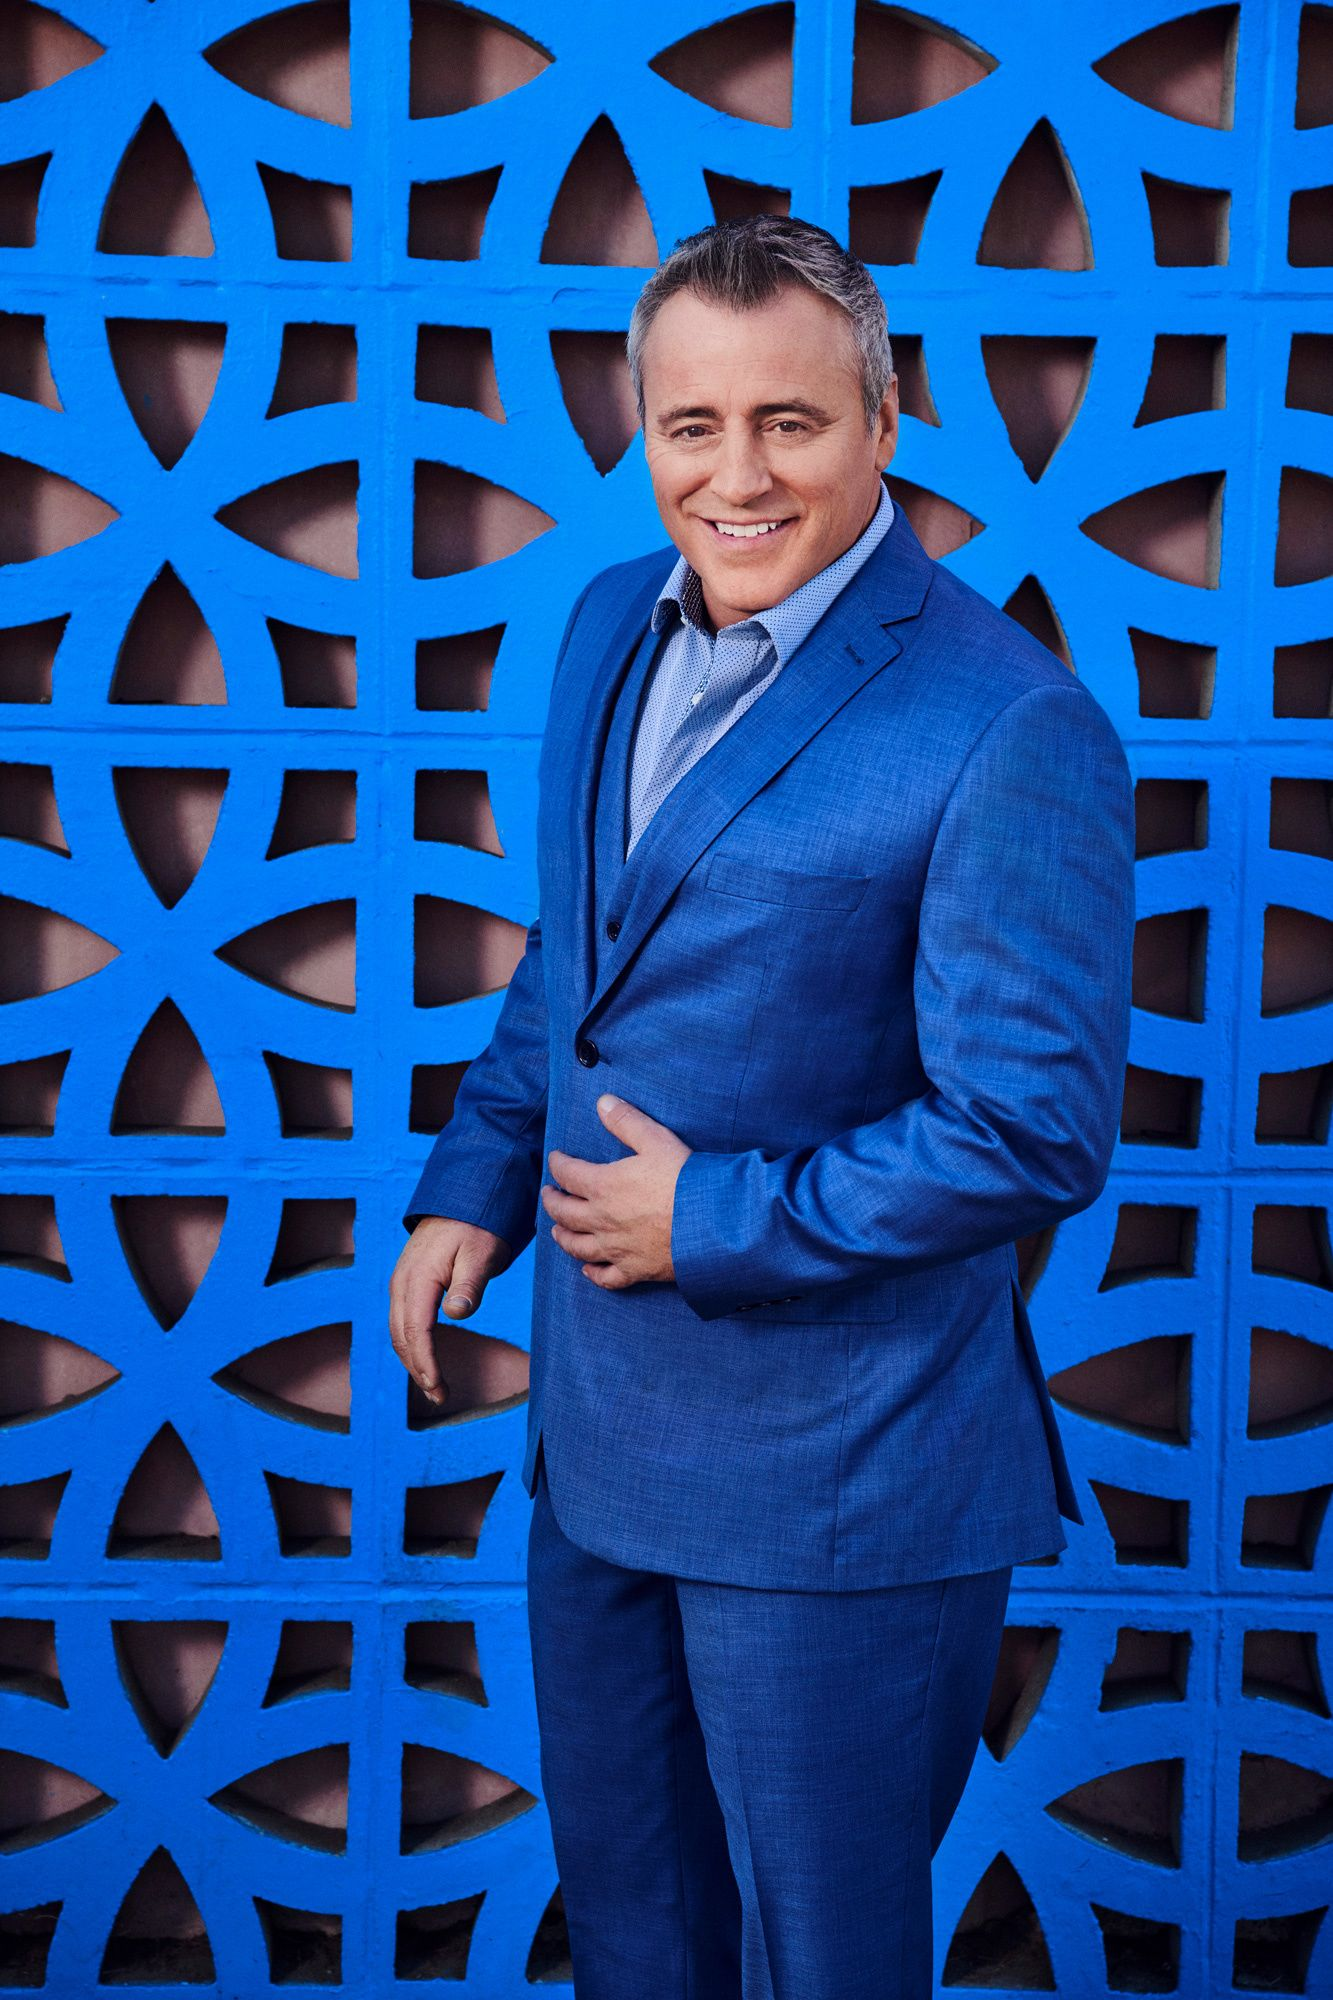 Actor Matt LeBlanc standing in front of a bright blue ornate deco wall wearing a blue suit .